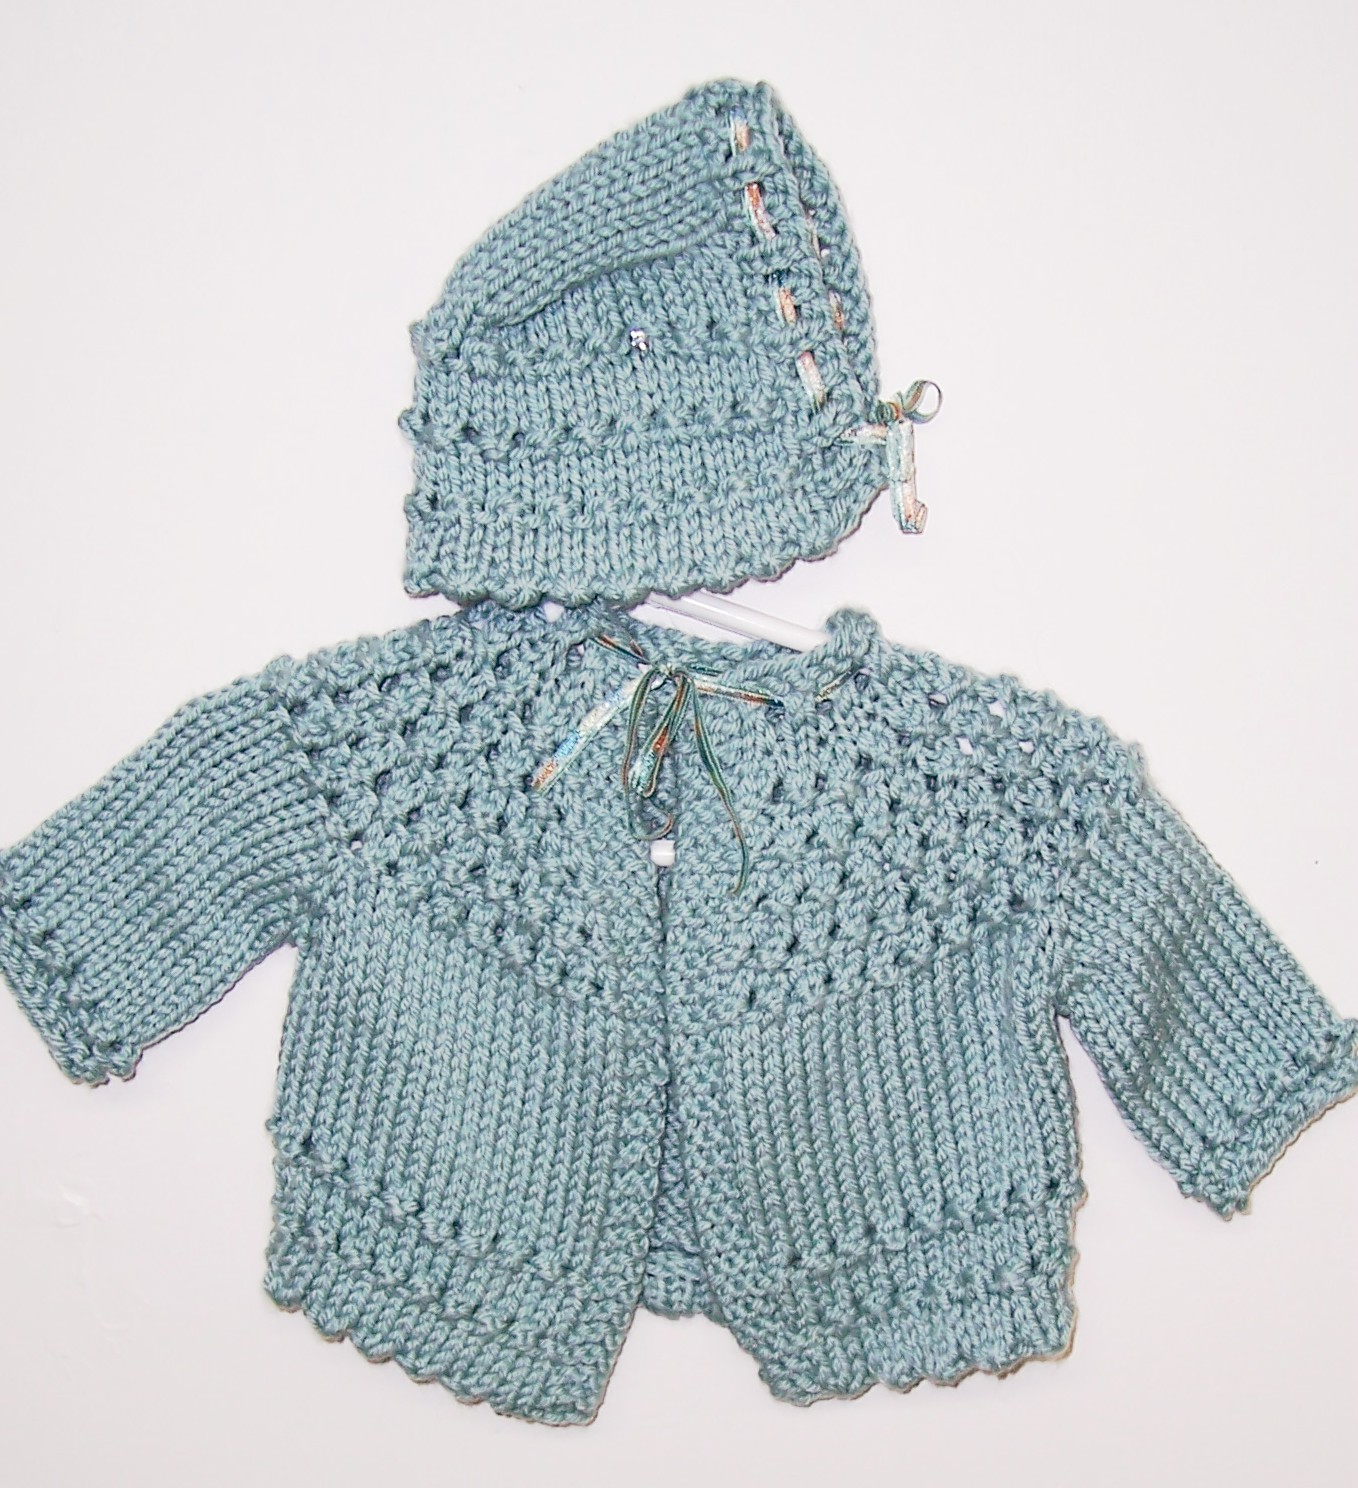 Crochet Pattern Central Baby Cardigans : CROCHET BABY HOODED SWEATER FREE PATTERNS Crochet Patterns